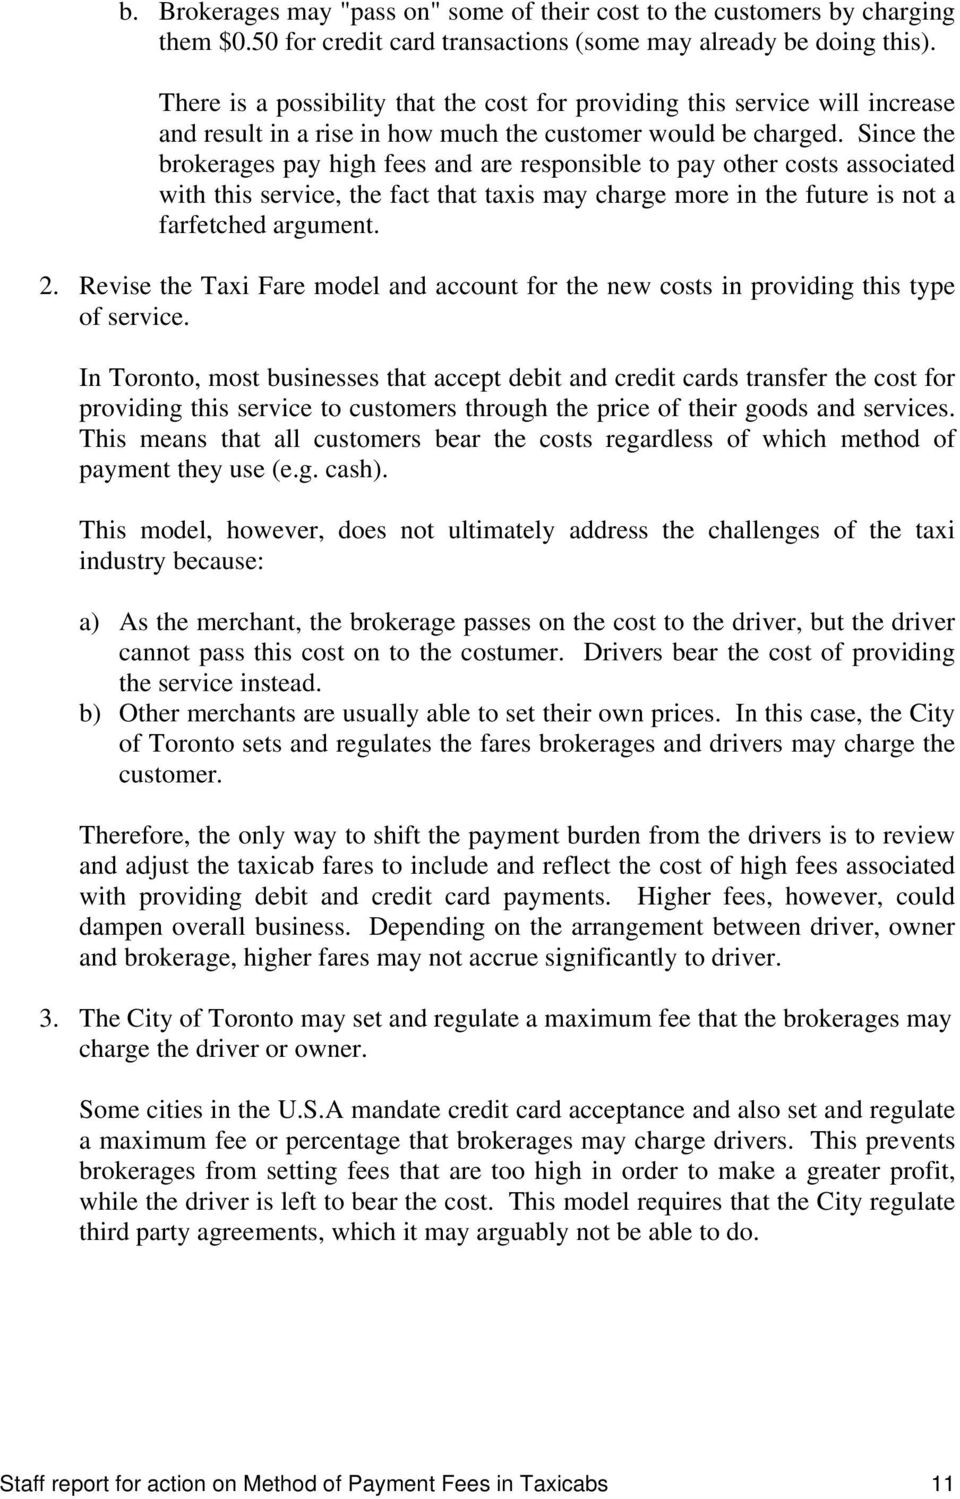 Since the brokerages pay high fees and are responsible to pay other costs associated with this service, the fact that taxis may charge more in the future is not a farfetched argument. 2.